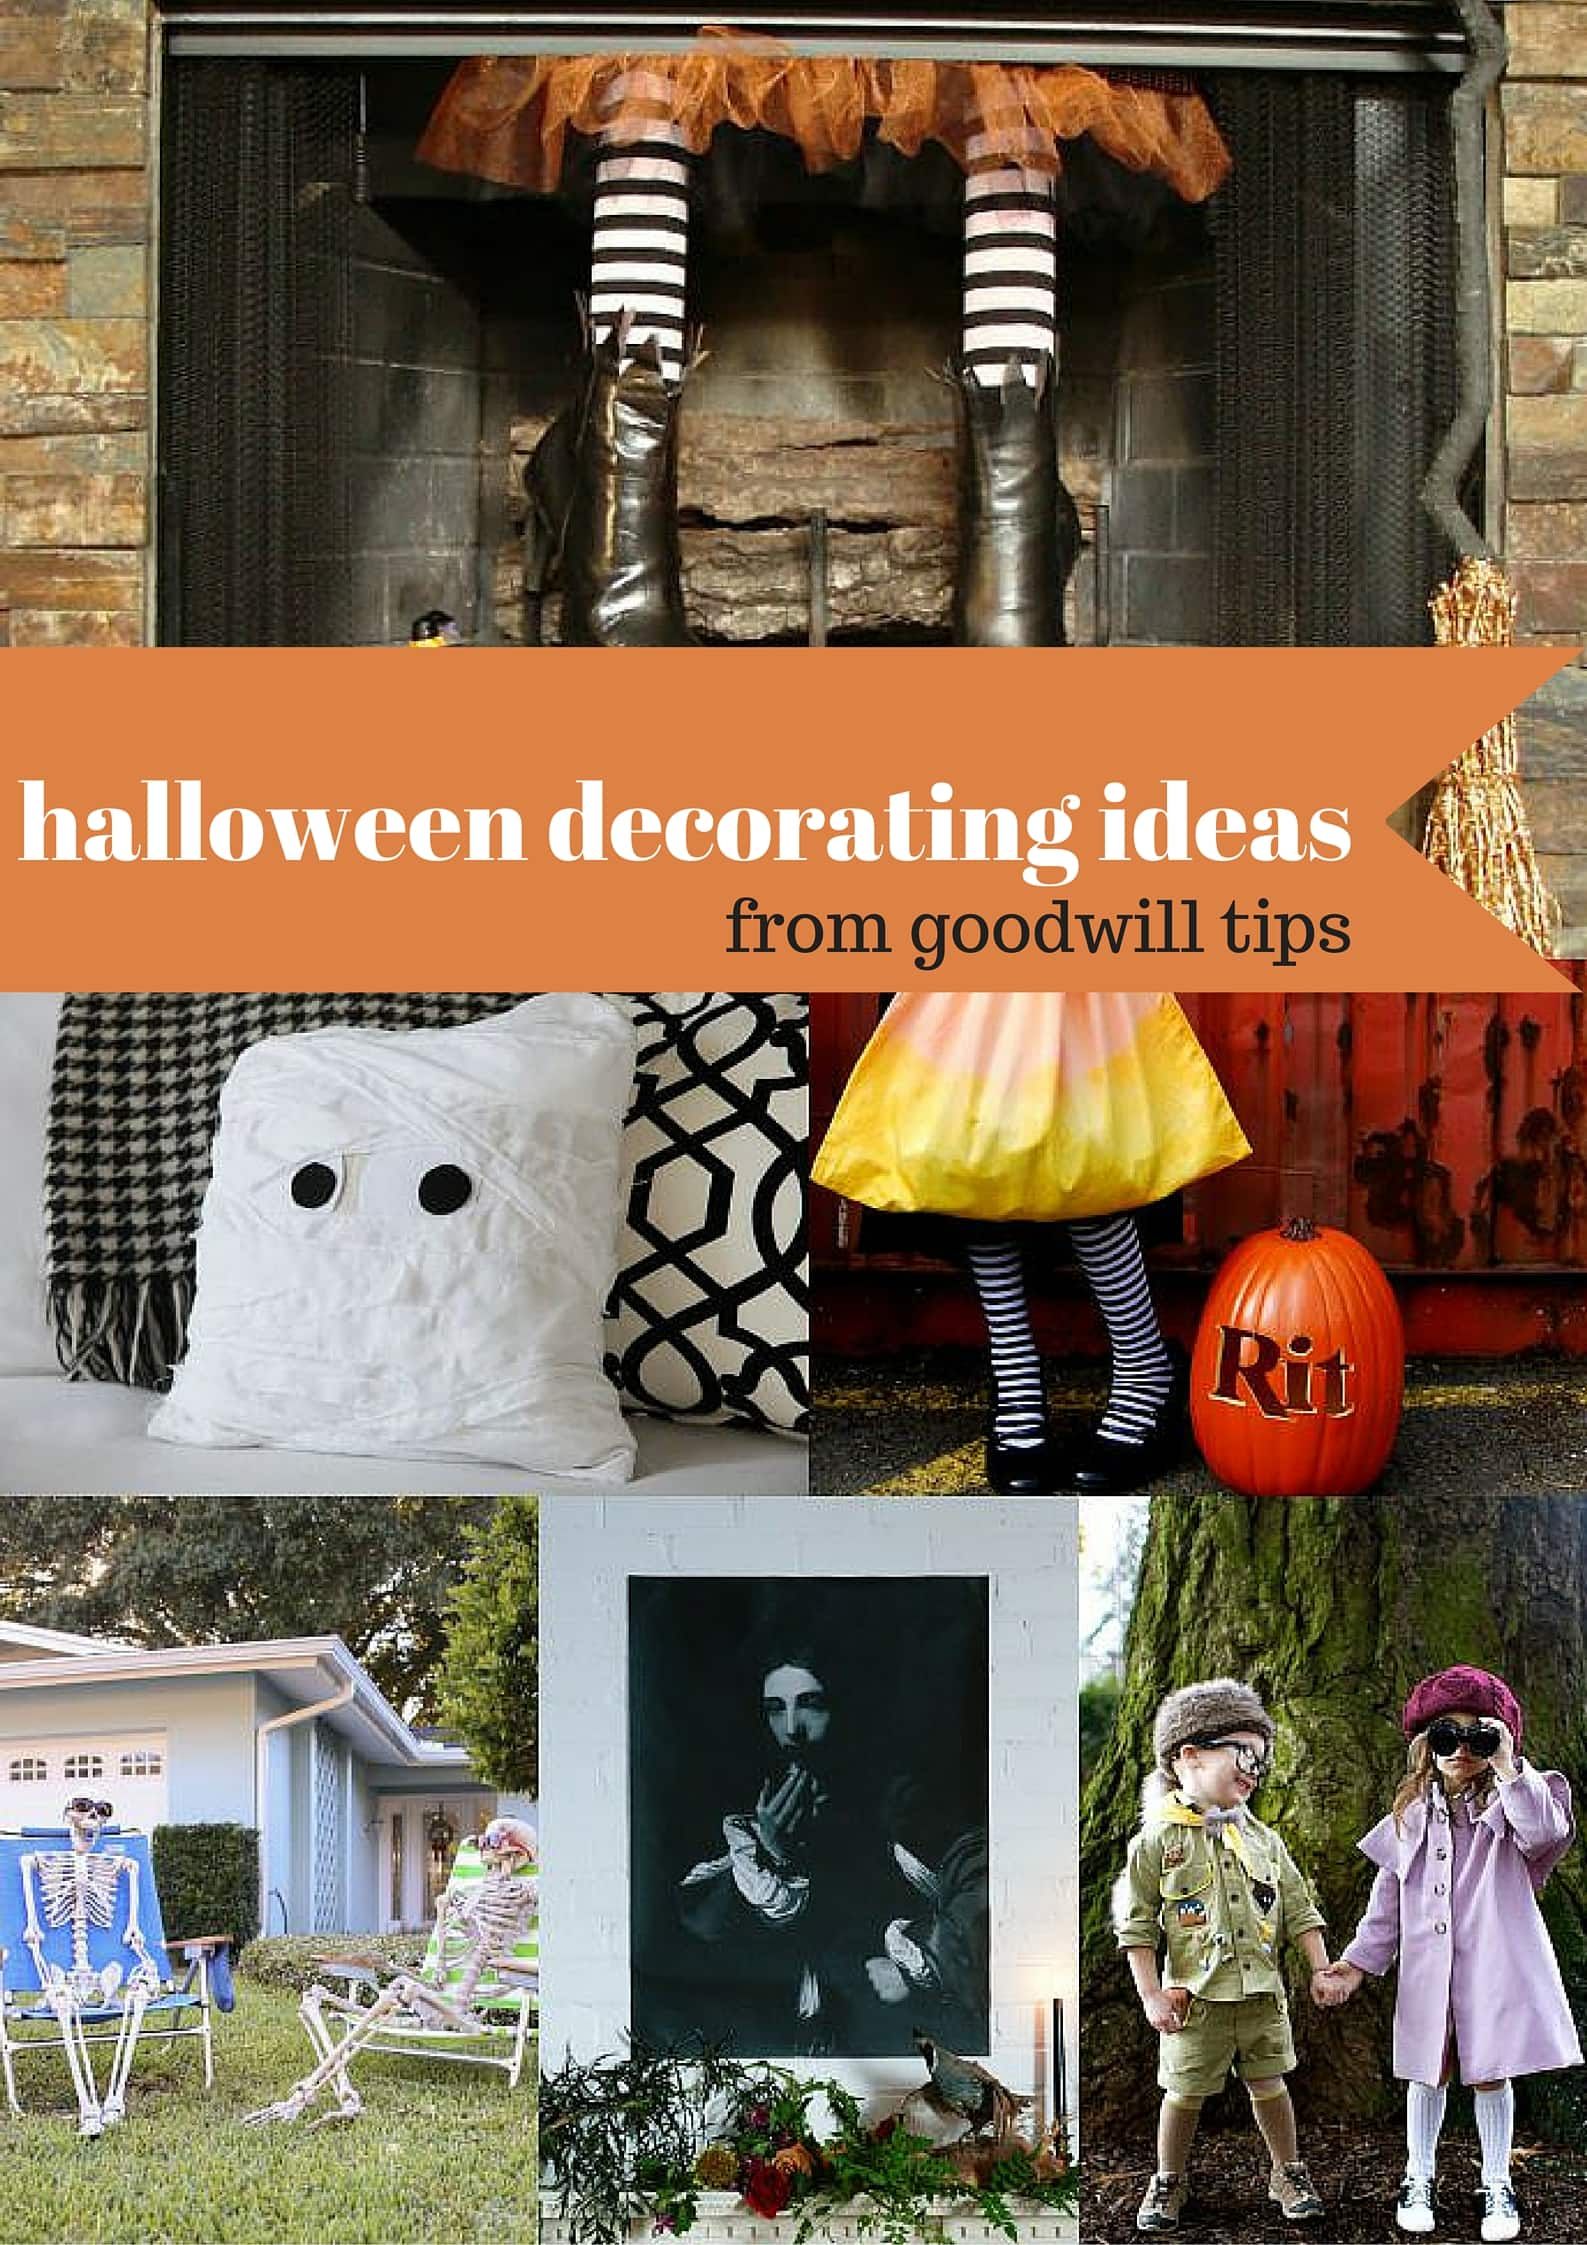 6 Festive Halloween Decorating Ideas from MomAdvice.com